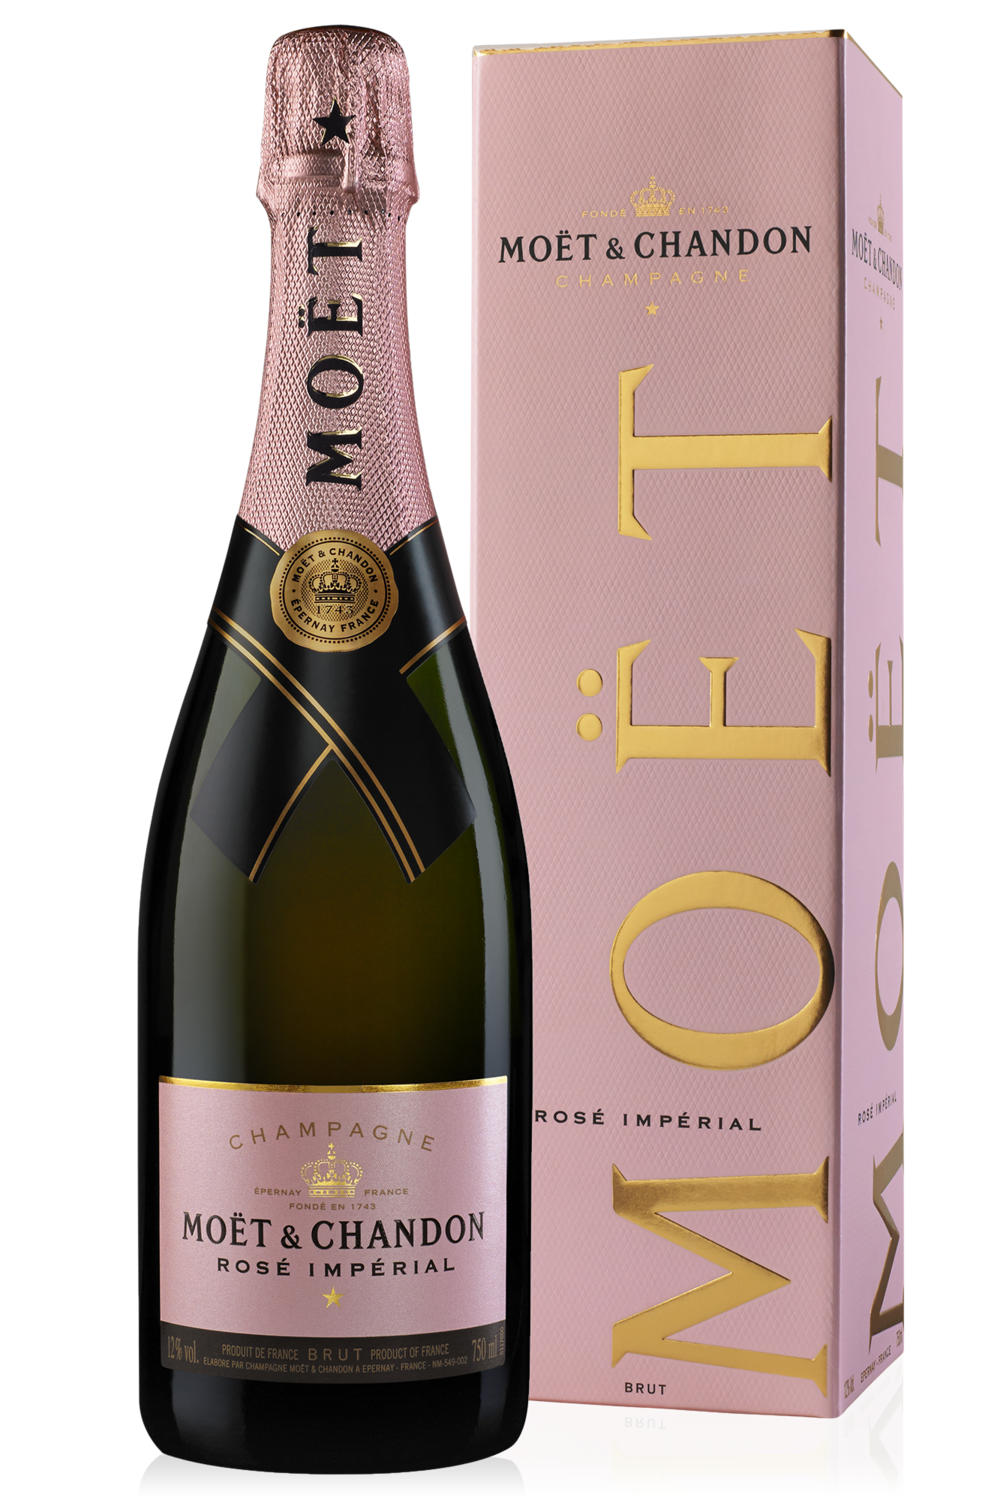 Champagne Moet rose imperial x750cc